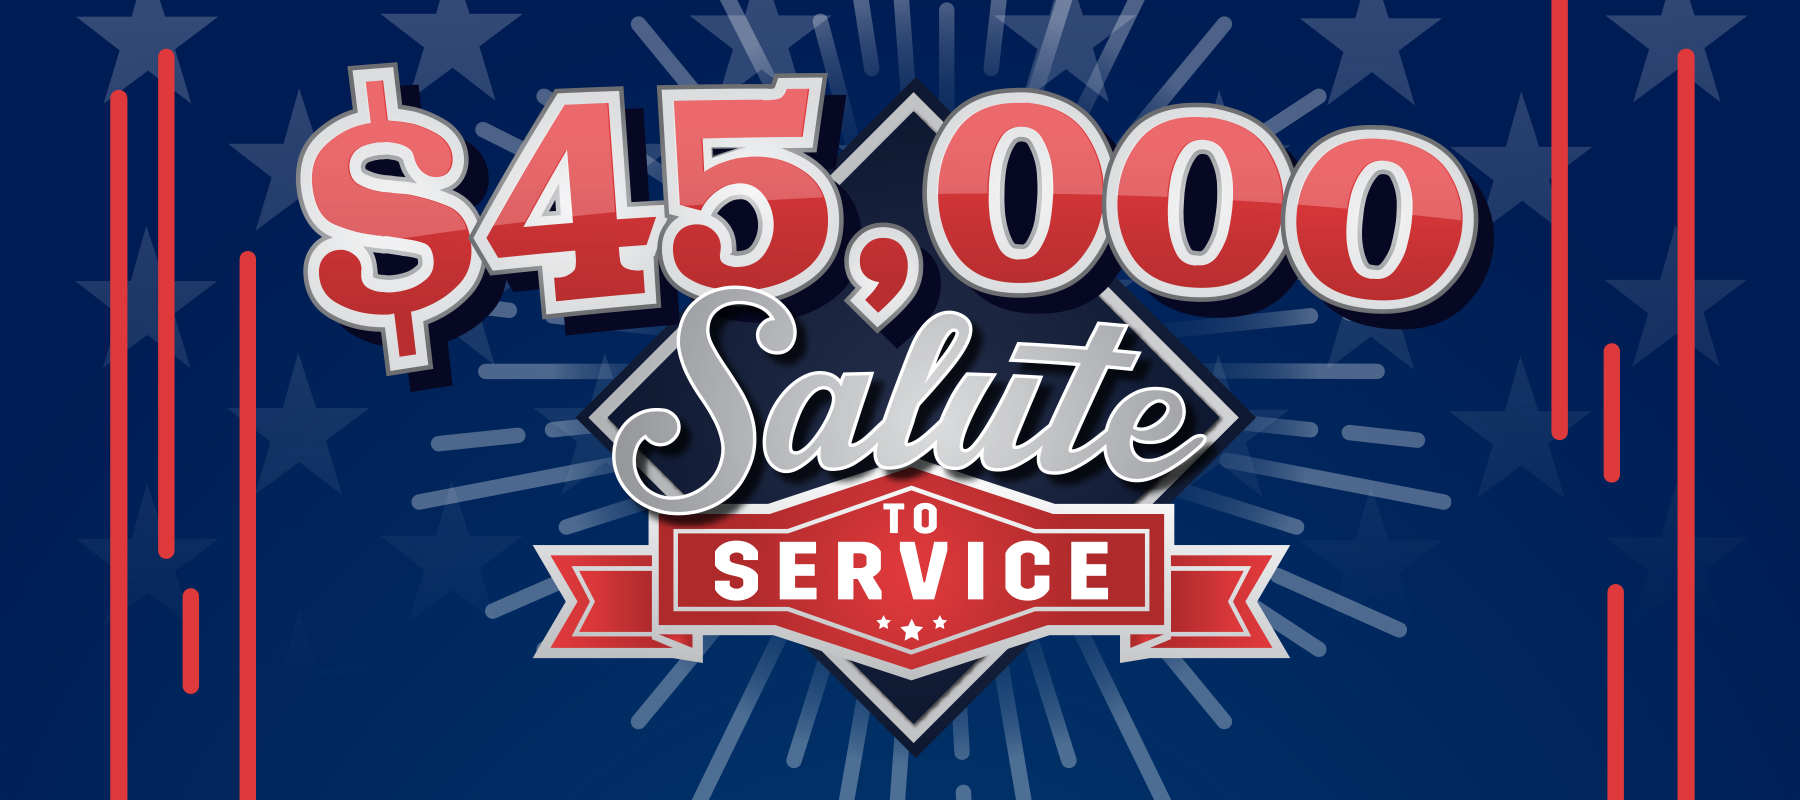 $45,000 Salute To Service